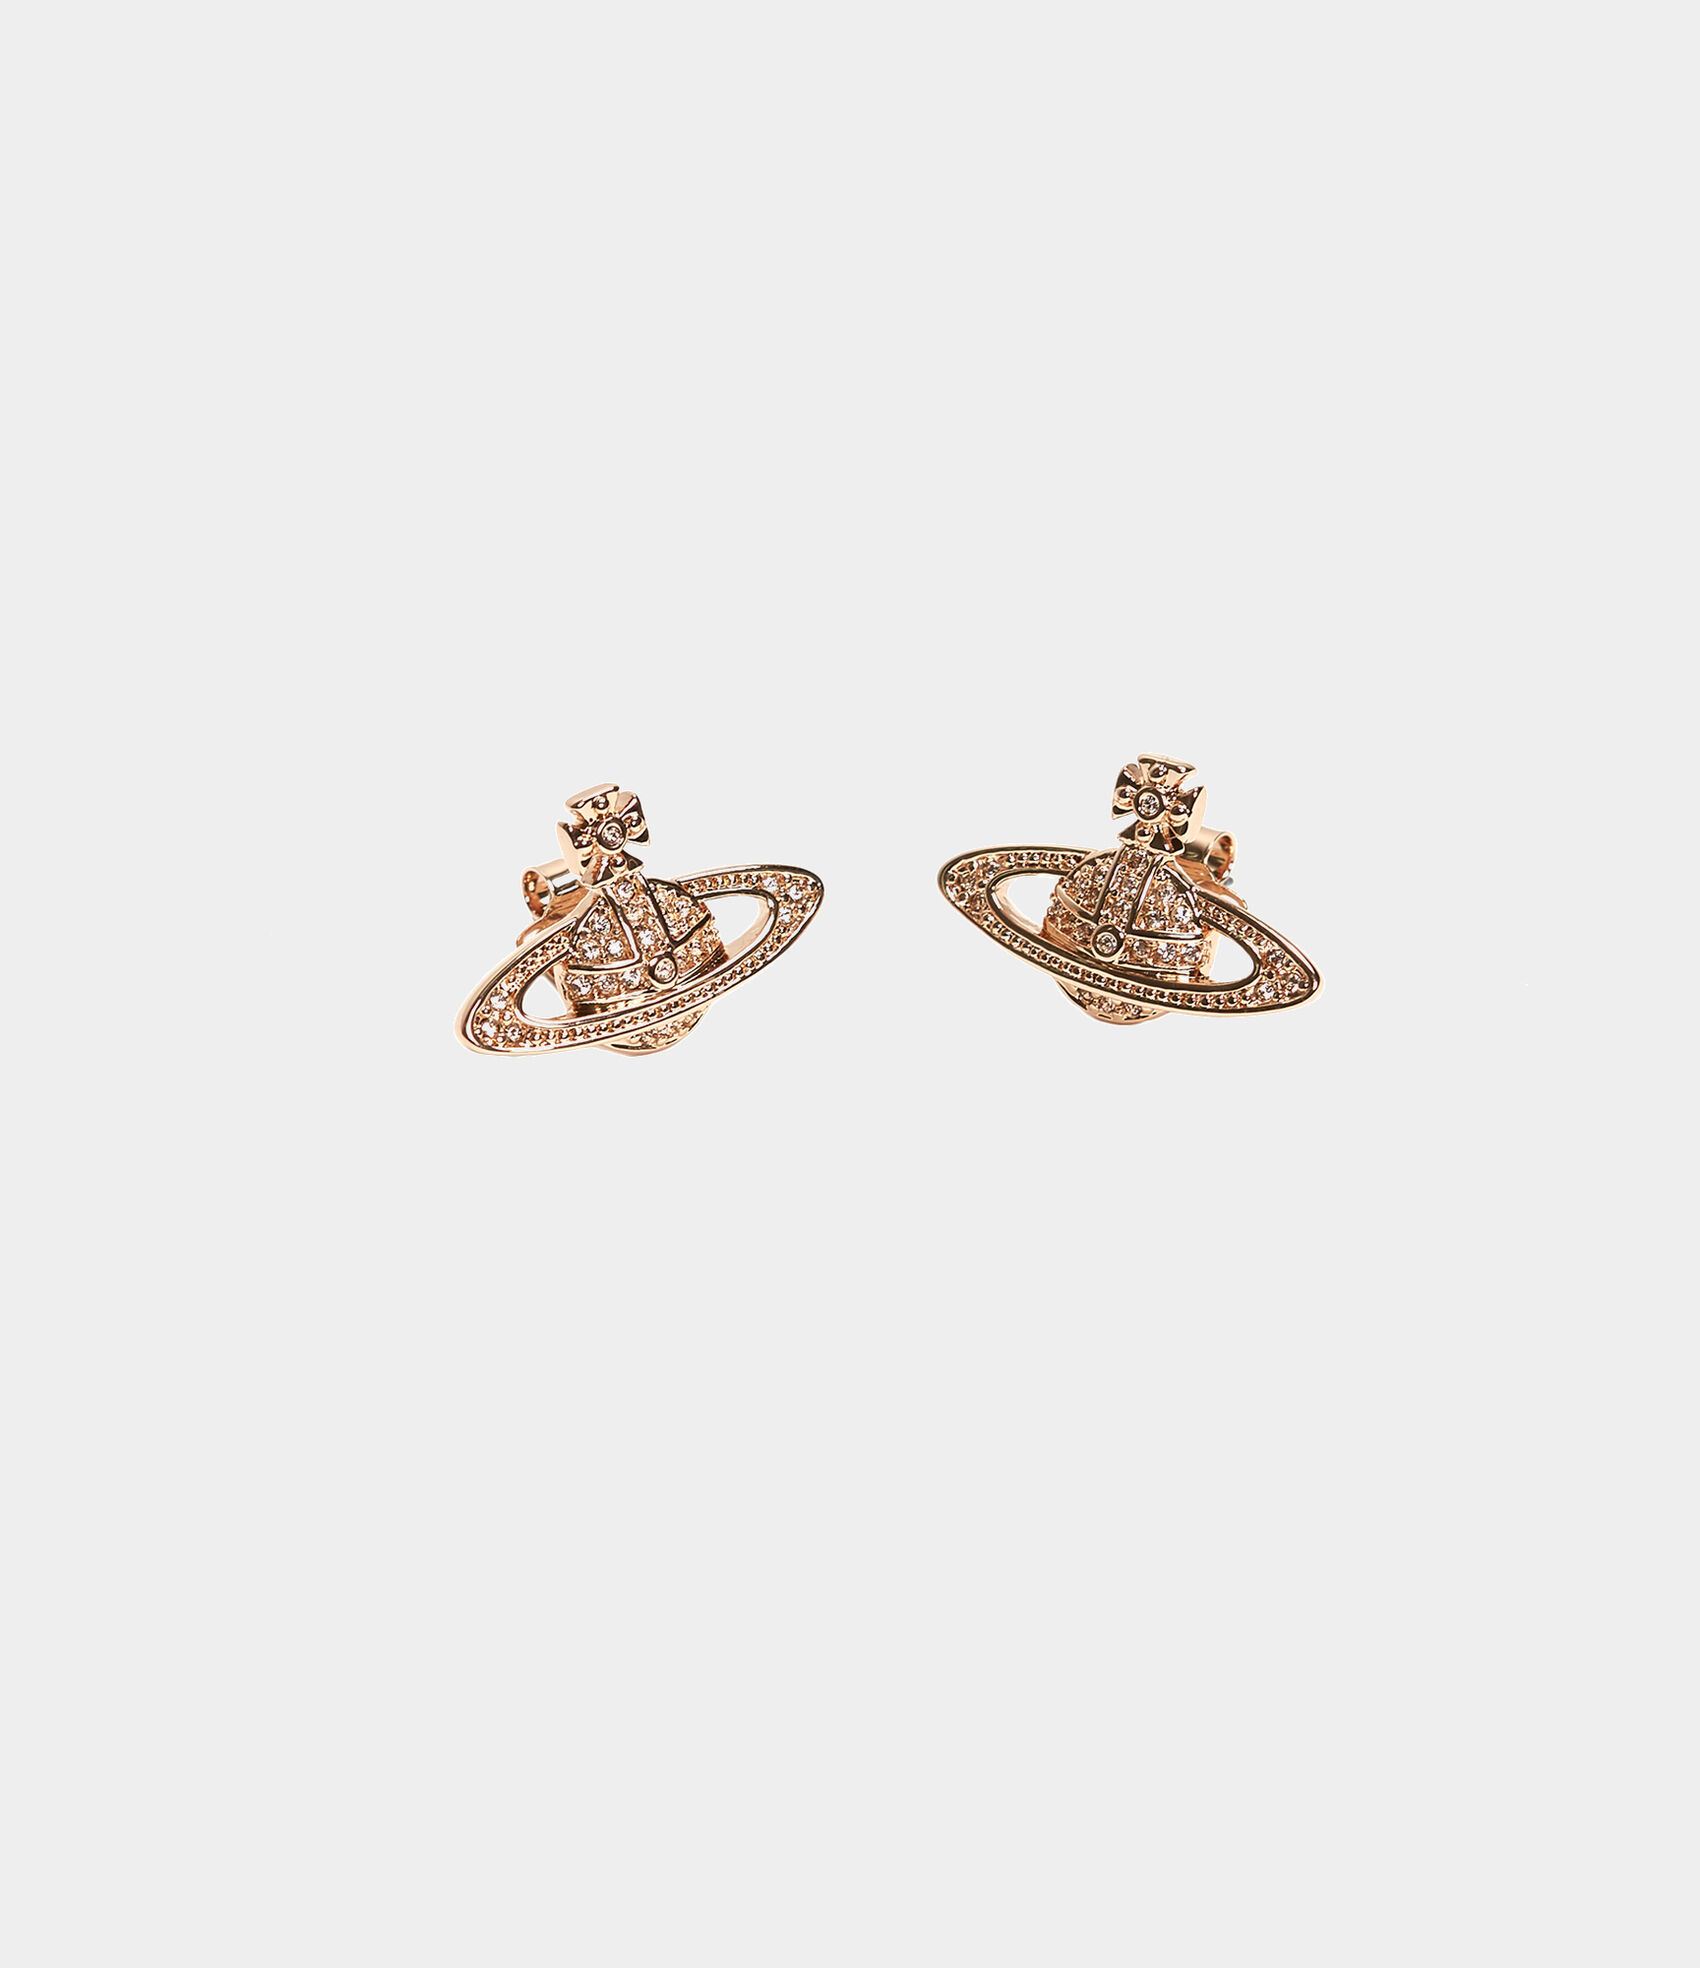 33f43bb7a46 Mini Bas Relief Earrings Pink Golden Tone